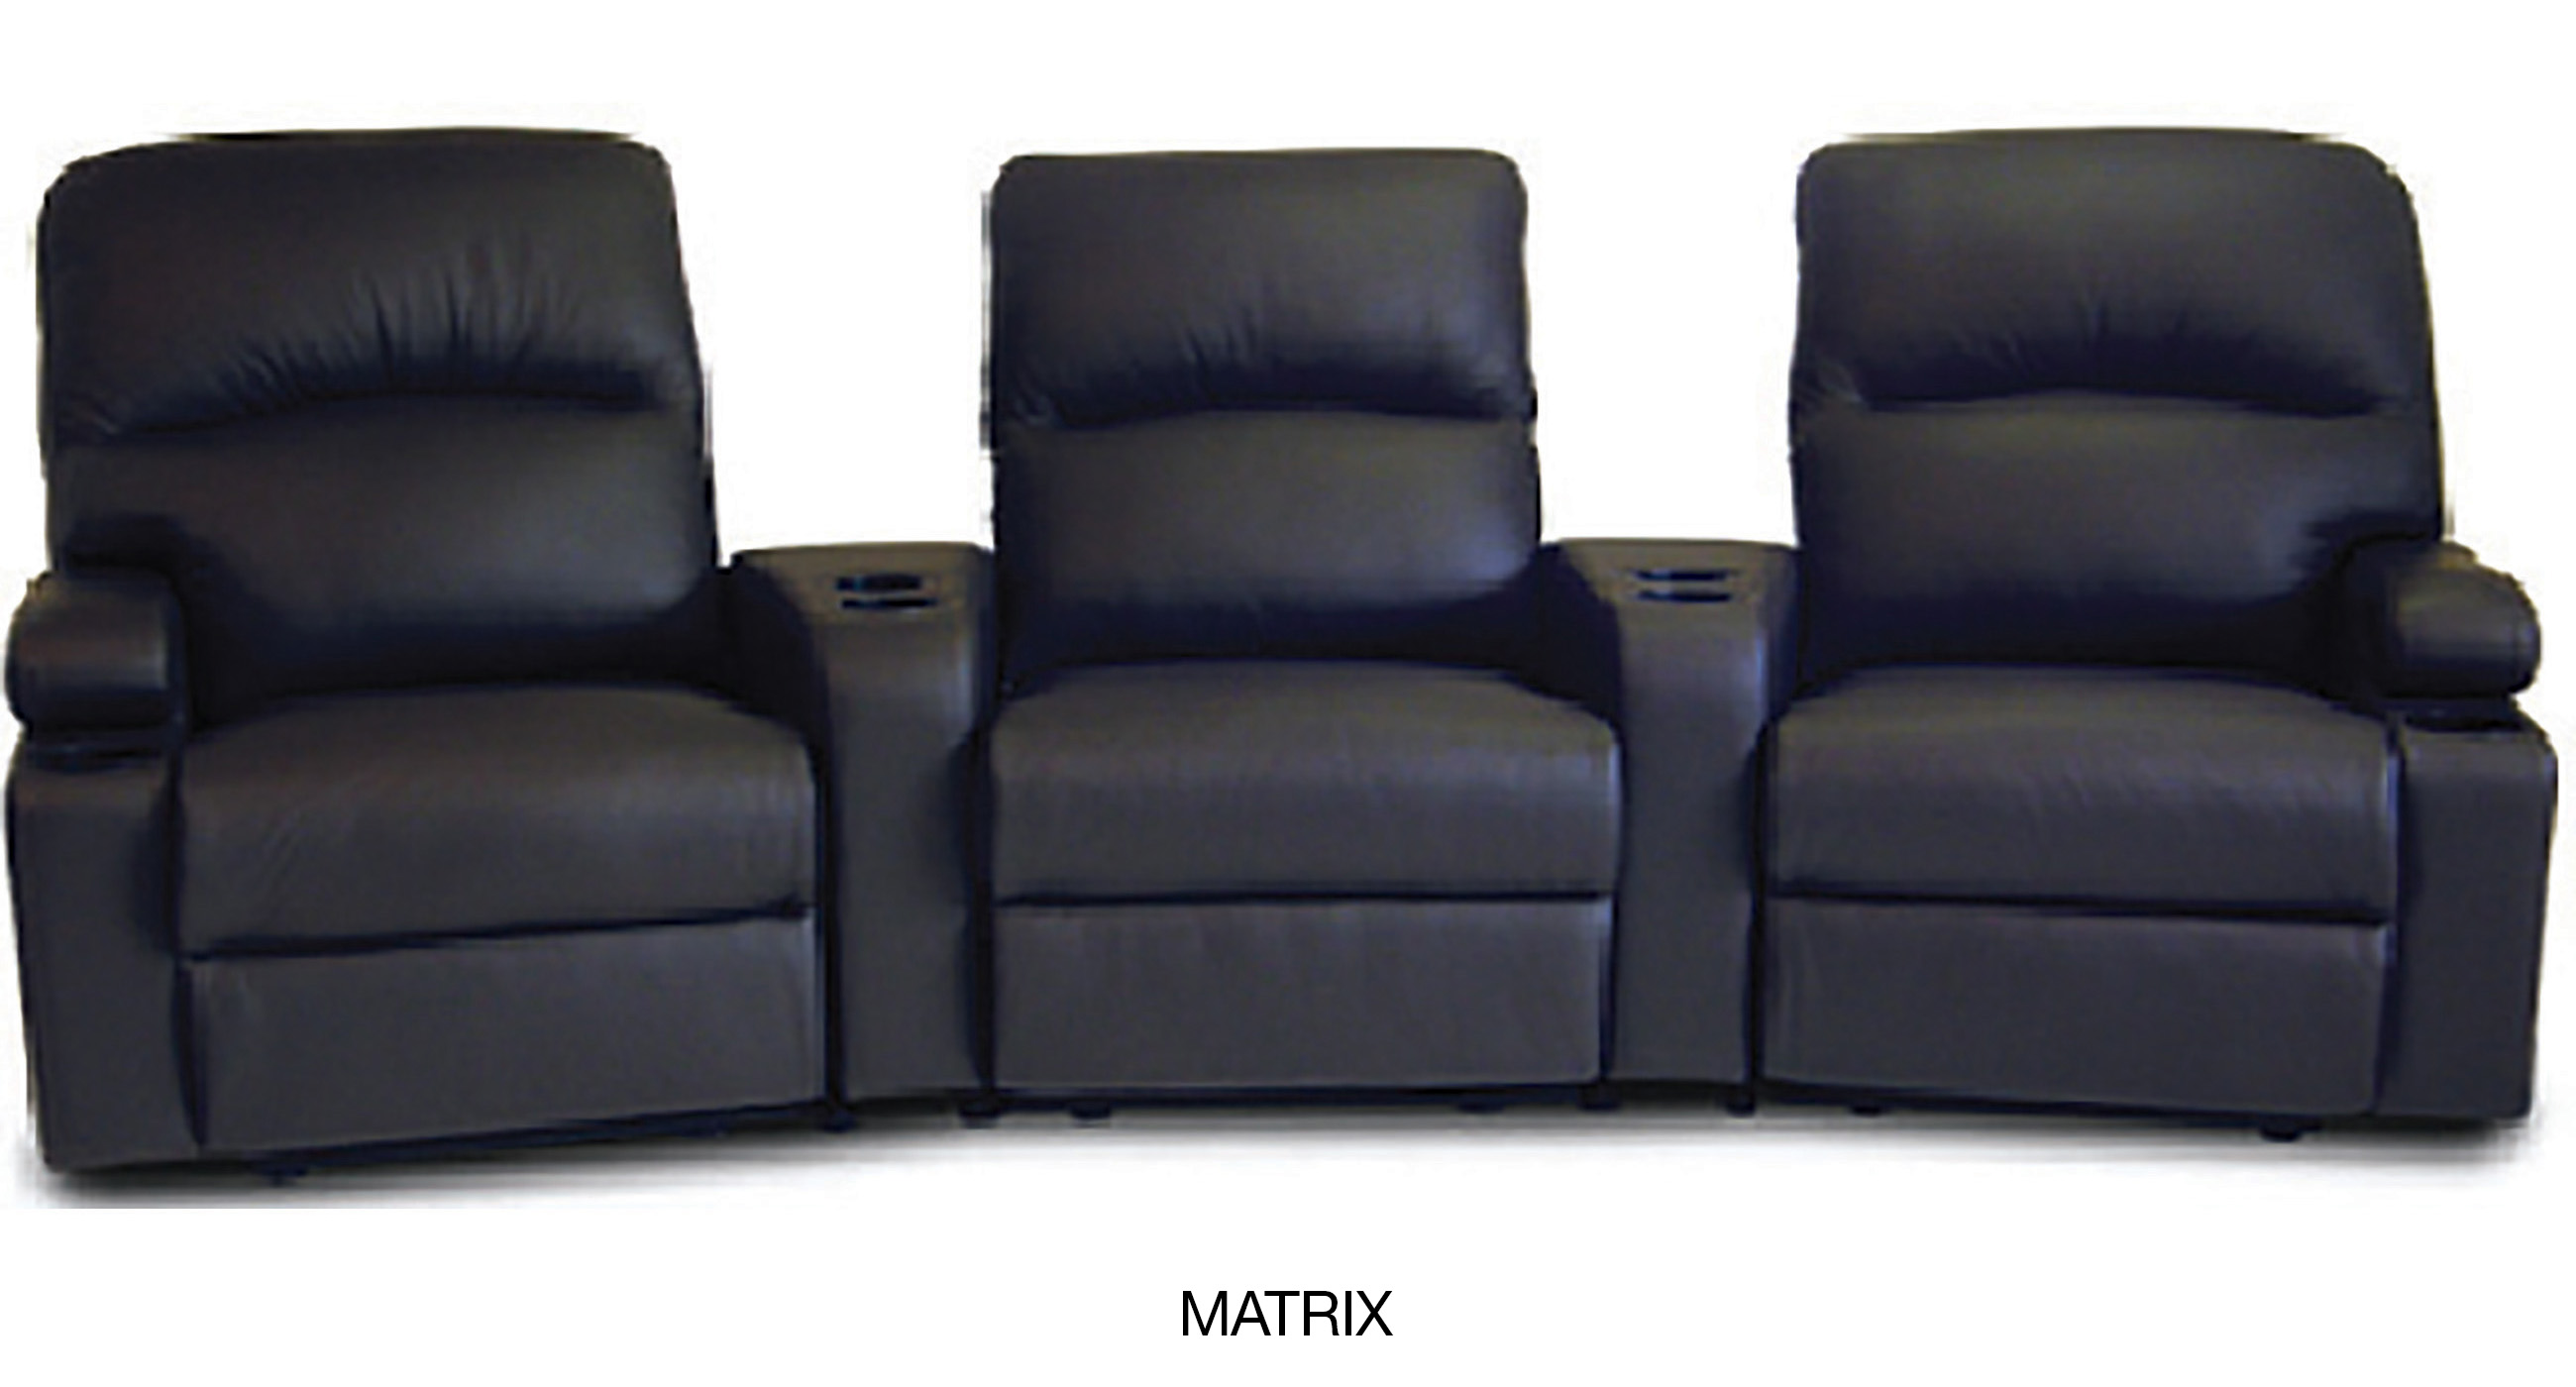 Deco, Retreat and Matrix Reclining Sofas and Chairs